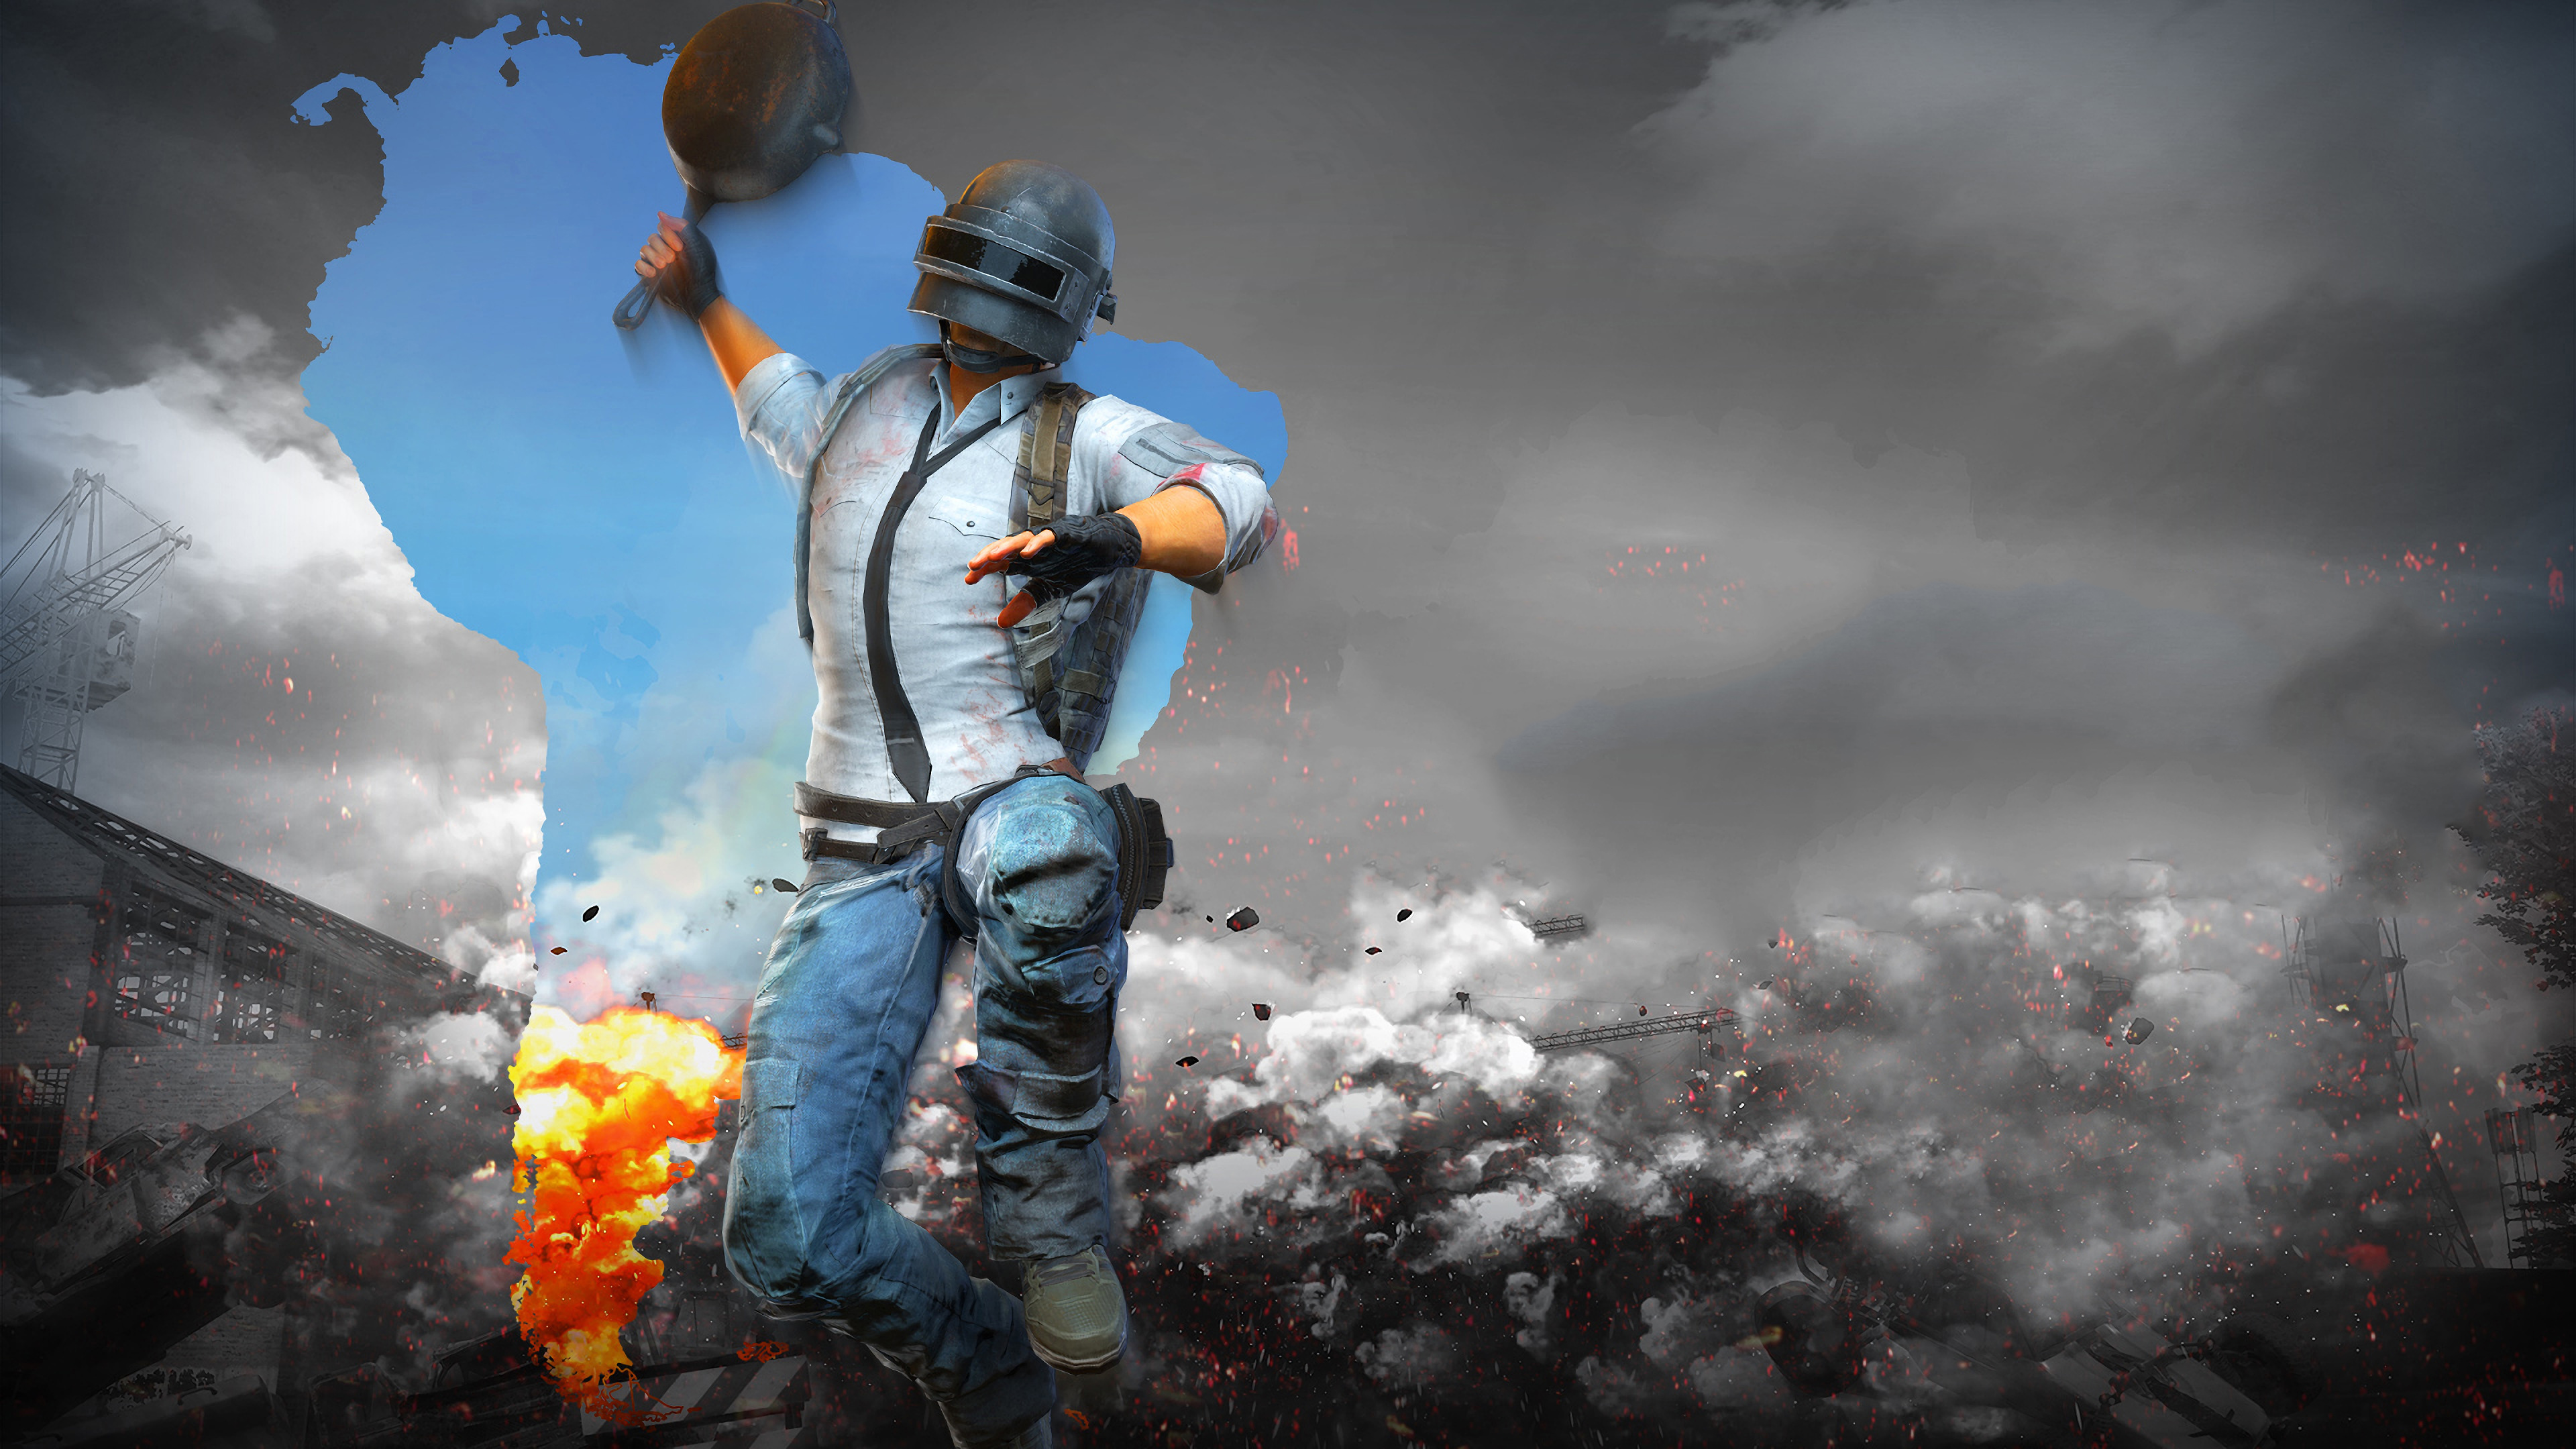 Pubg Hd For Pc: PUBG Helmet Man With Pan 4k, HD Games, 4k Wallpapers